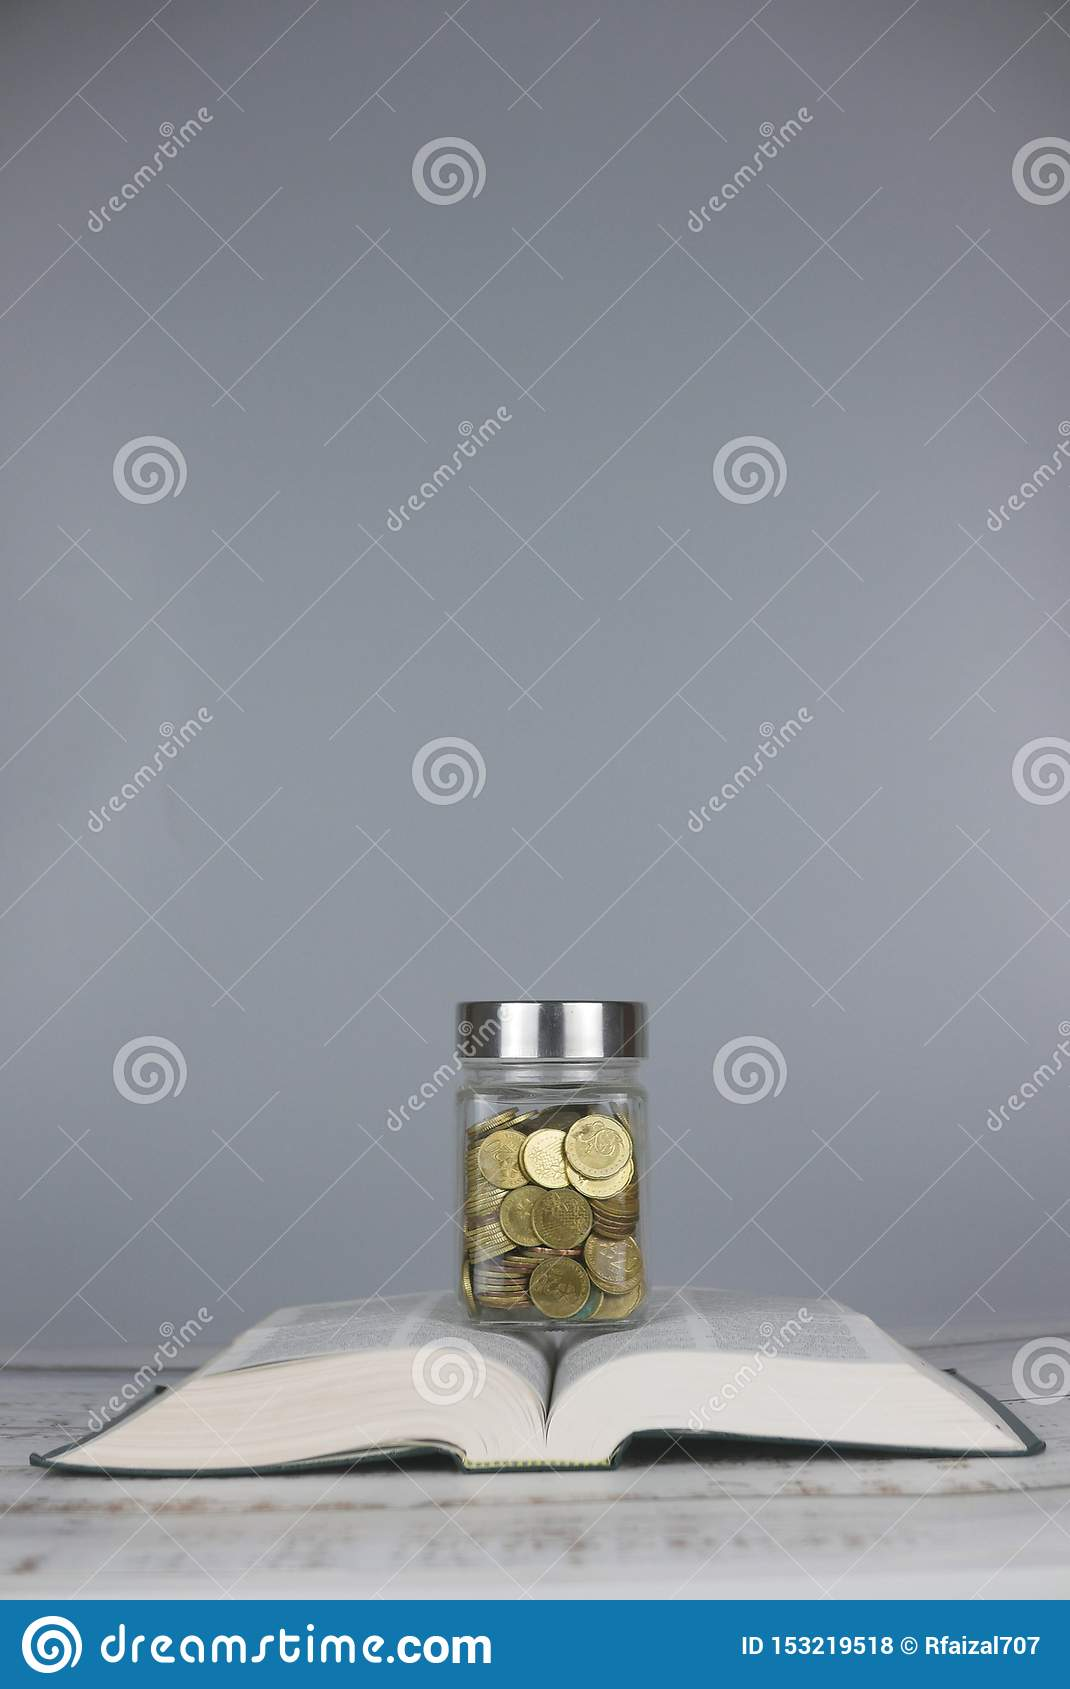 Gold coins on book. Finance and education concept. Copy space for text or logo